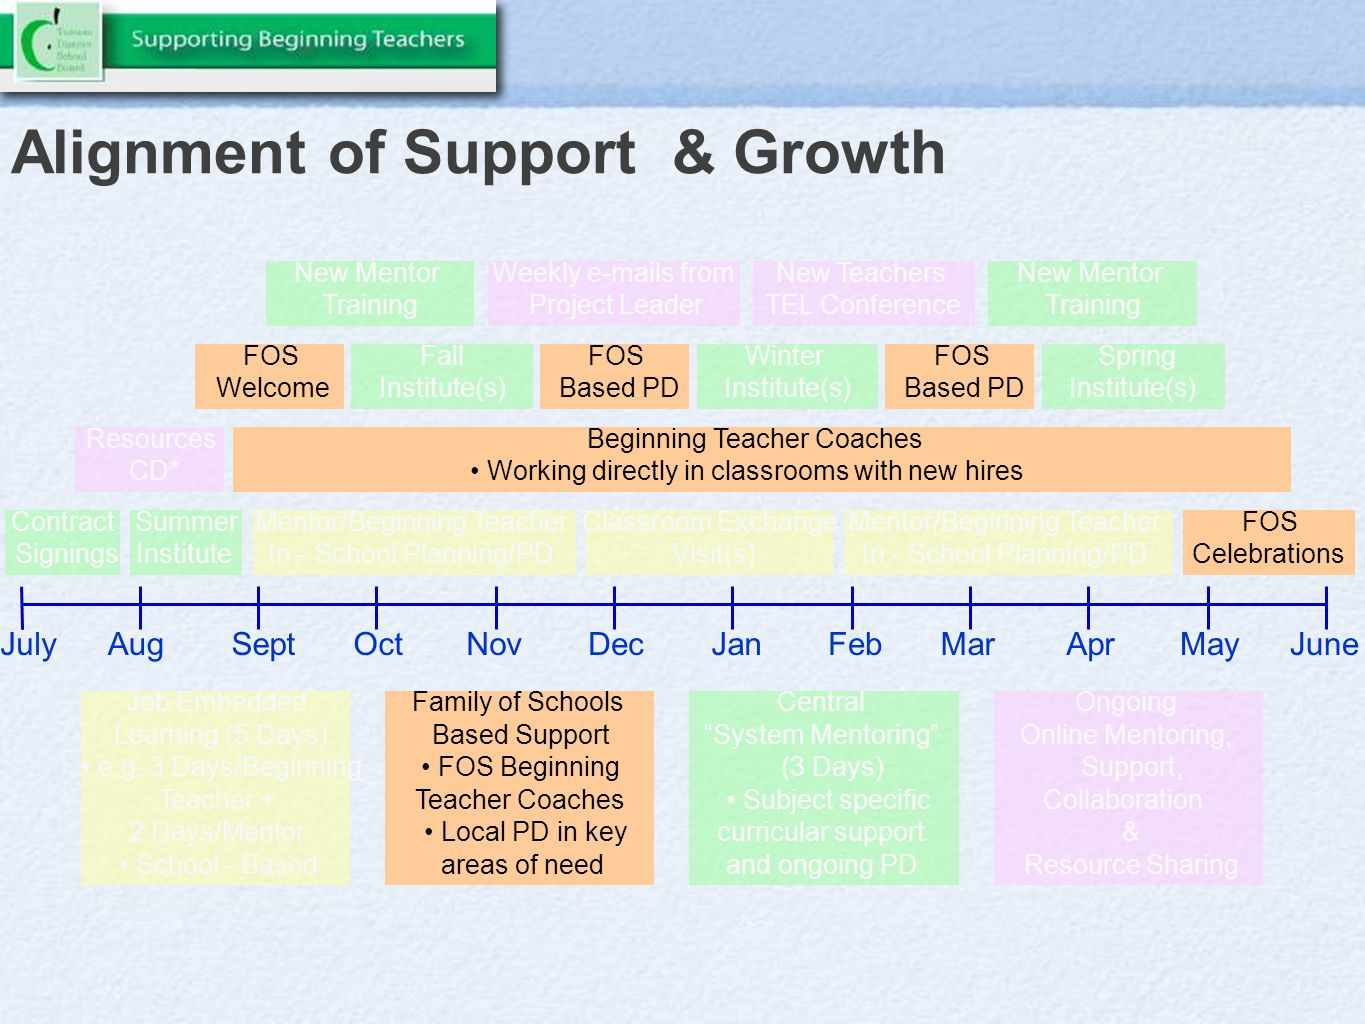 Alignment of Support & Growth AugSeptOctNovDecJanFebMarAprMayJuneJuly Resources CD* Beginning Teacher Coaches Working directly in classrooms with new hires Family of Schools Based Support FOS Beginning Teacher Coaches Local PD in key areas of need Job Embedded Learning (5 Days) e.g.